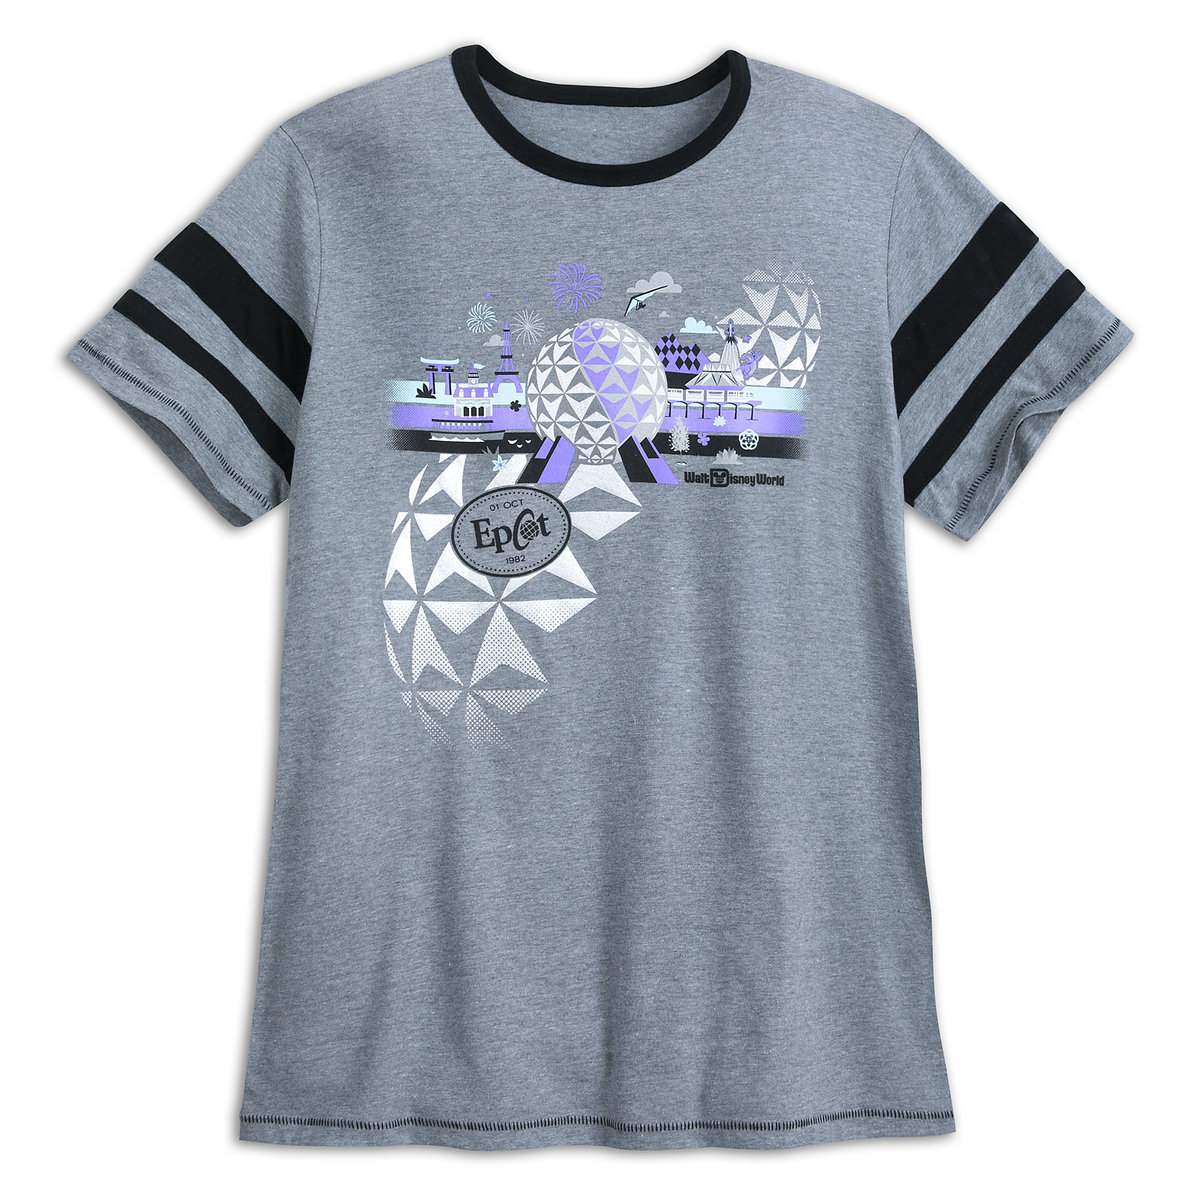 f690bdf8a21dea Product Image of Epcot Athletic Jersey T-Shirt for Adults - Walt Disney  World #